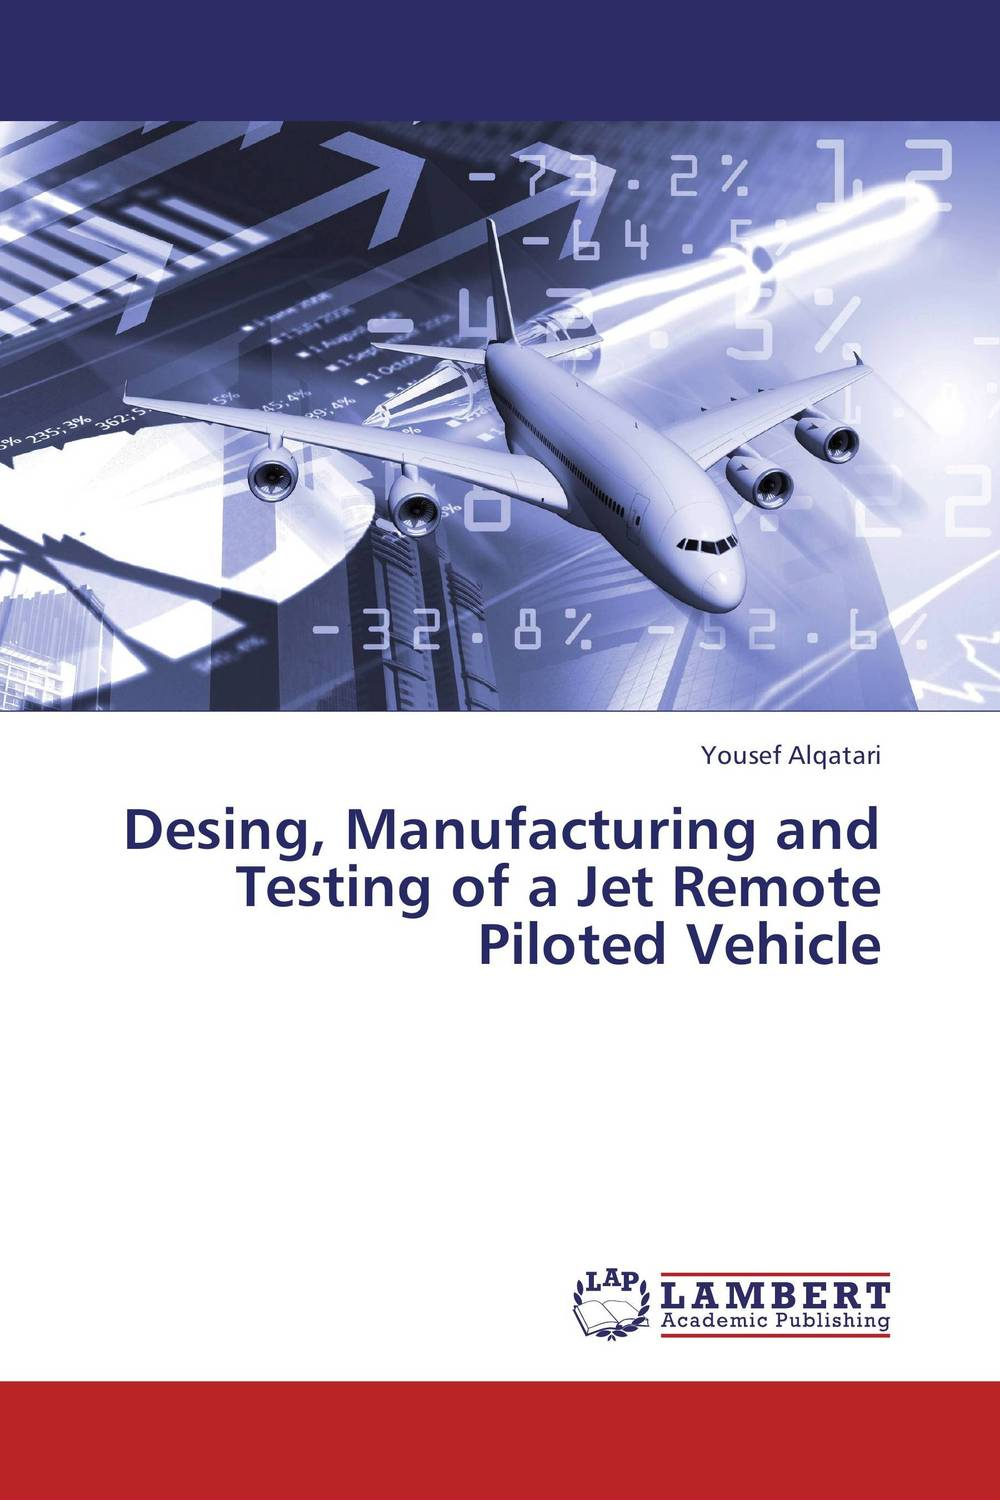 Desing, Manufacturing and Testing of a Jet Remote Piloted Vehicle k17 jet a